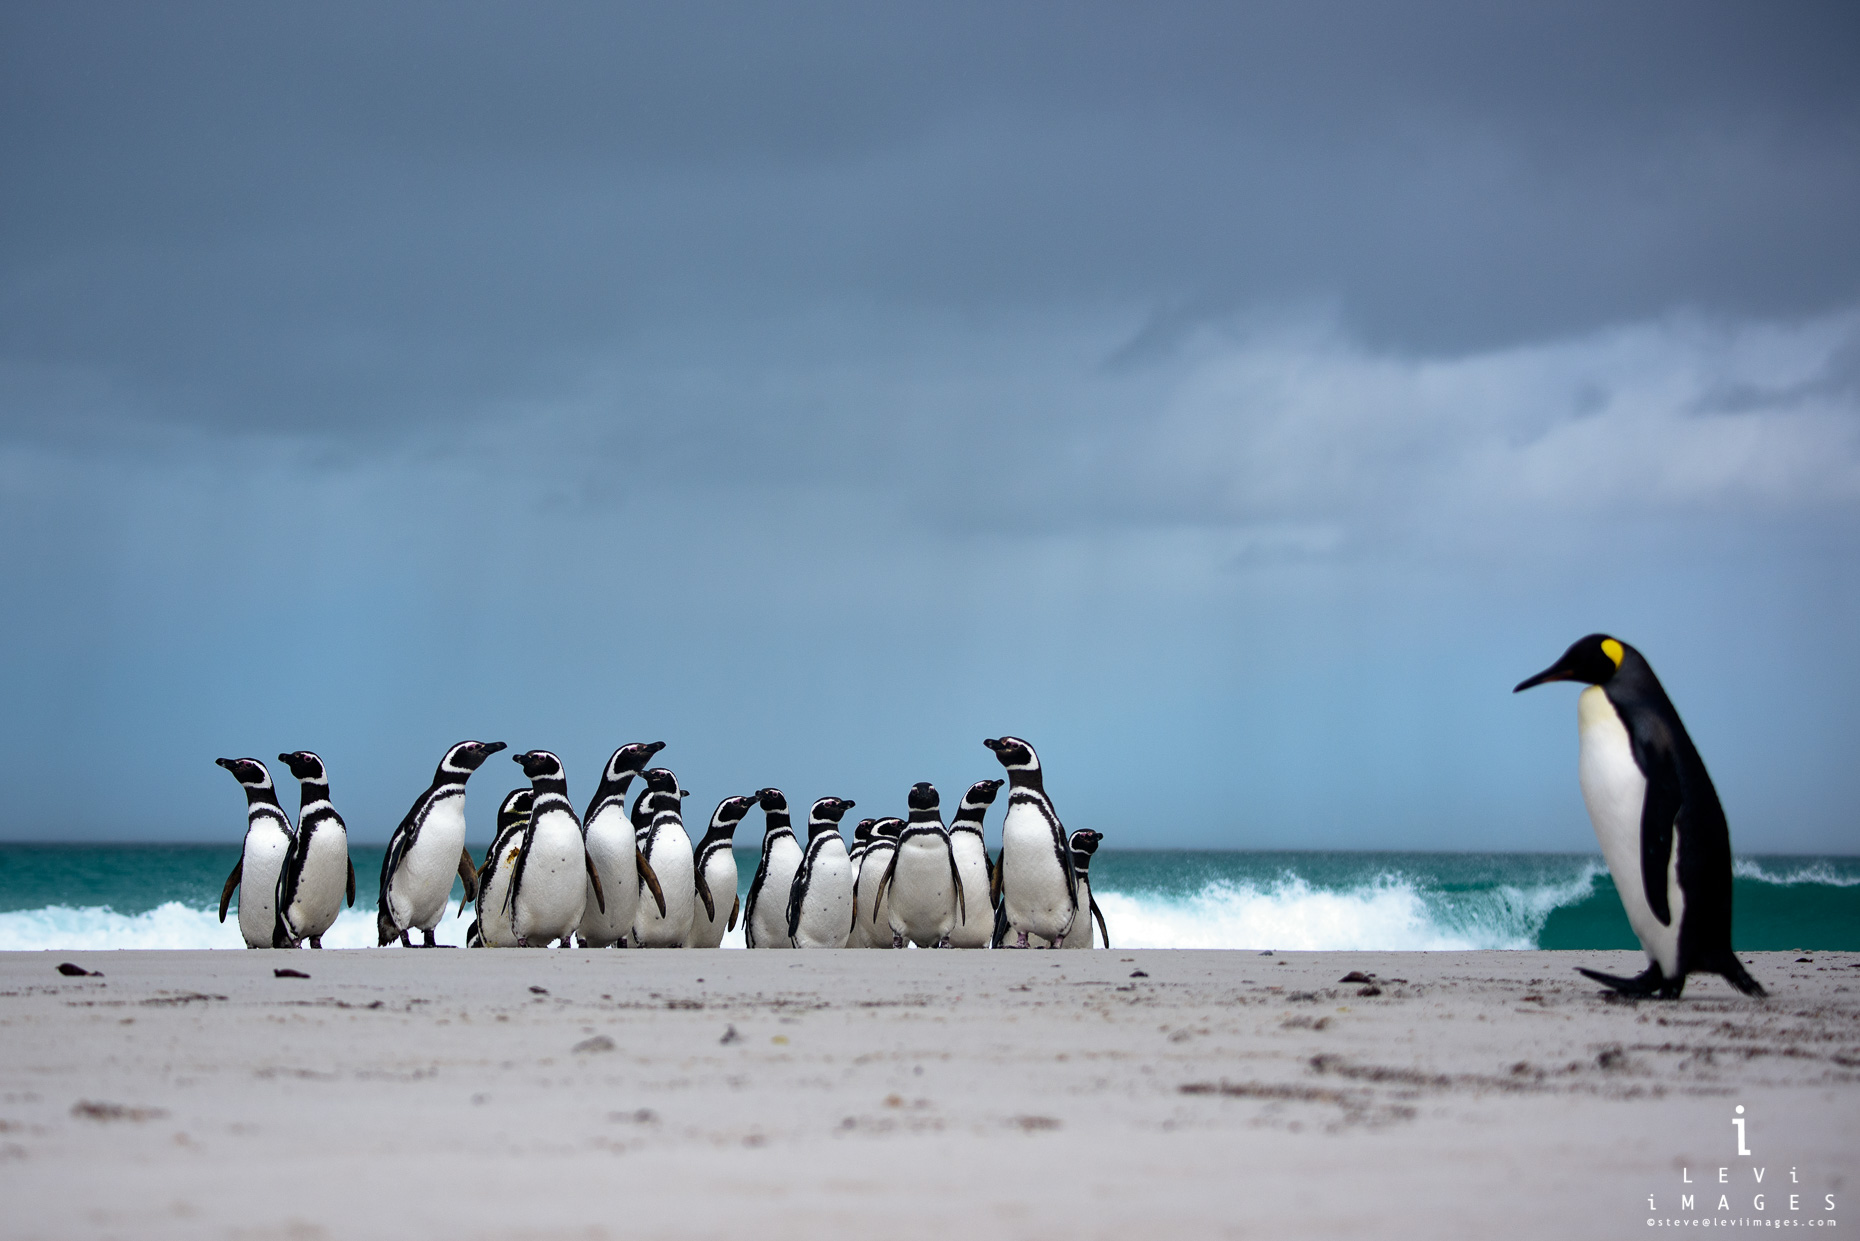 Magellanic penguins (Spheniscus magellanicus) on beach with dramatic clouds. Volunteer point, Falkland Islands